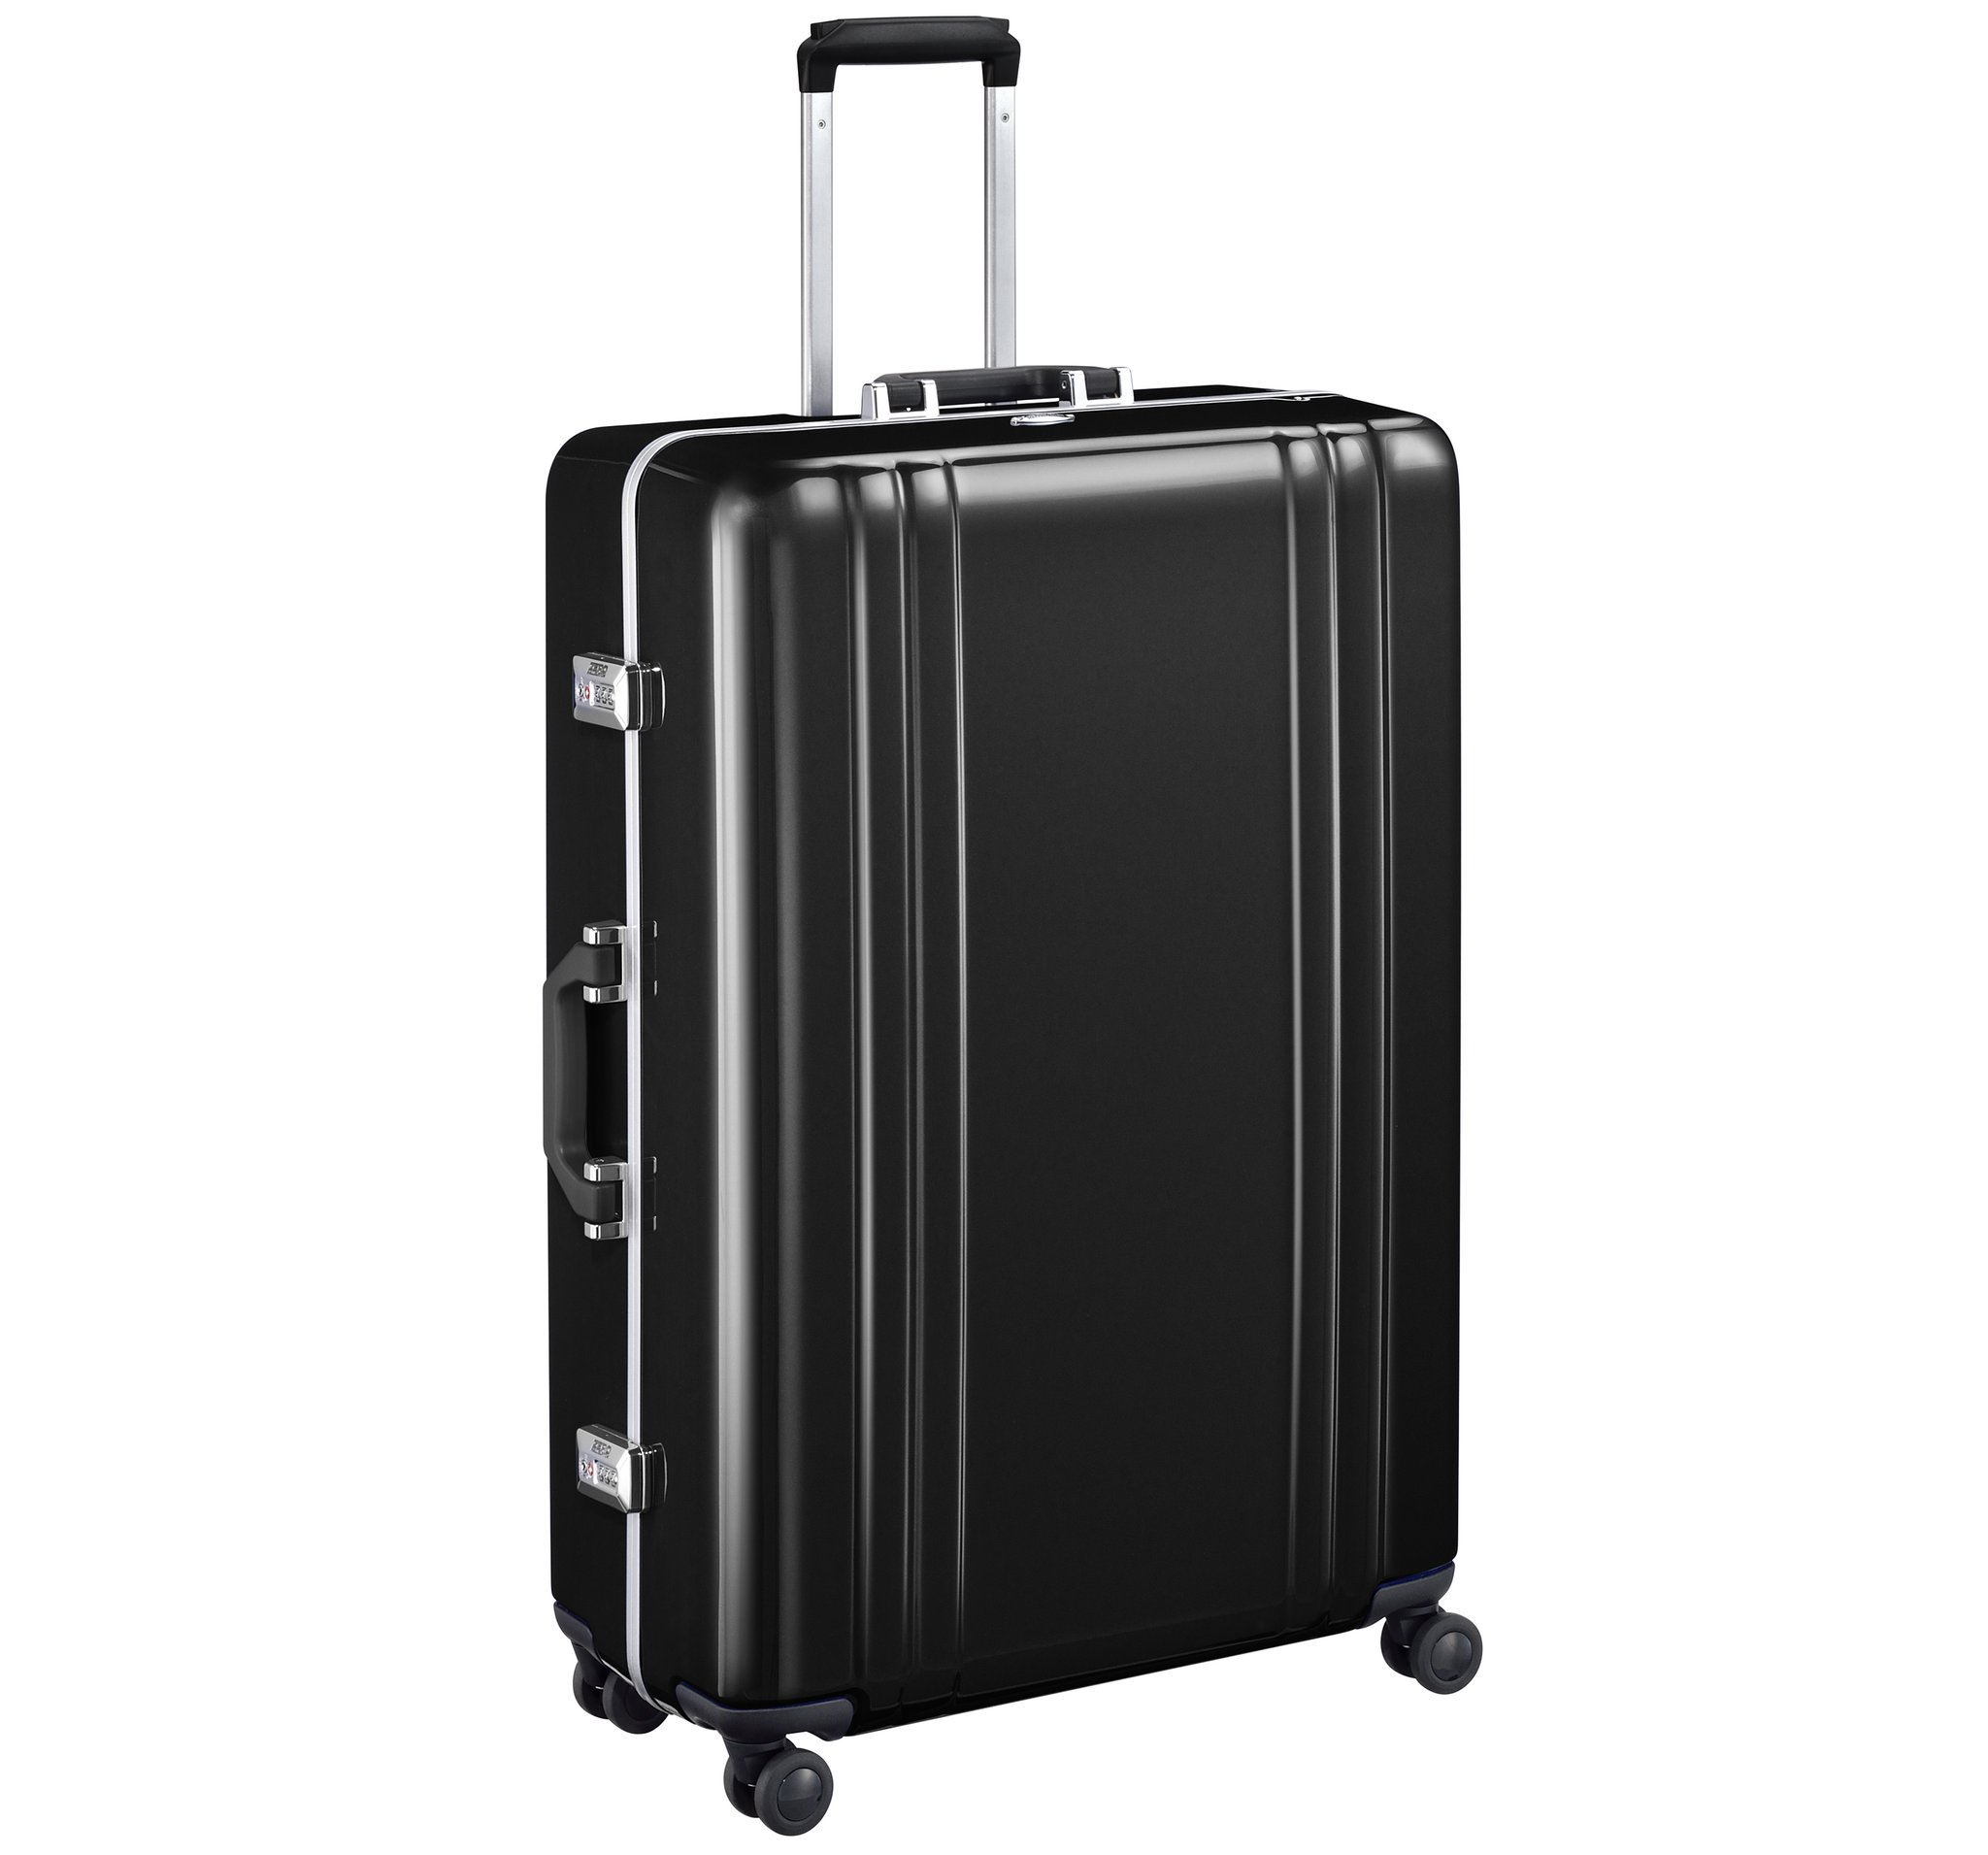 "Classic Polycarbonate 2.0 - 30"" 4-Wheel Travel Case by Zero Halliburton (Color: Black)"